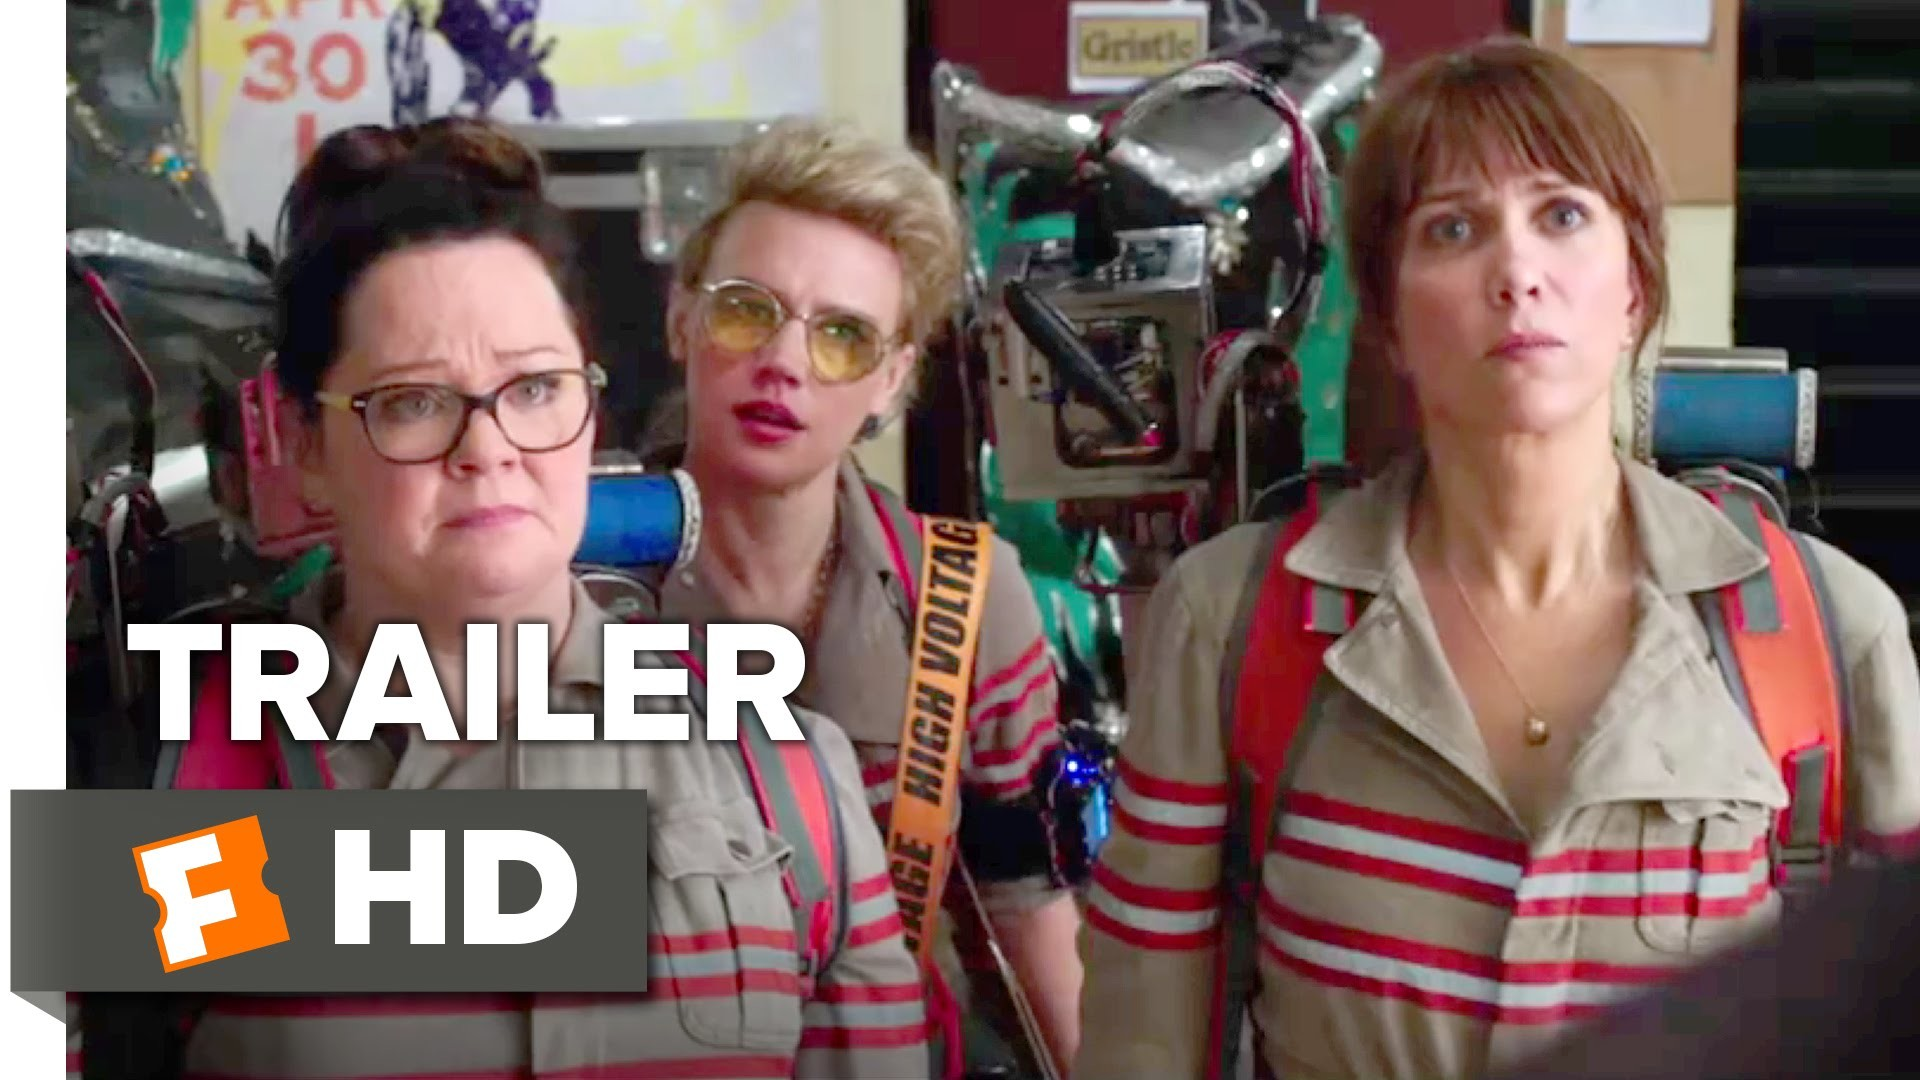 1920x1080 Ghostbusters Official Trailer #2 (2016) - Kristen Wiig, Melissa McCarthy  Movie HD - YouTube